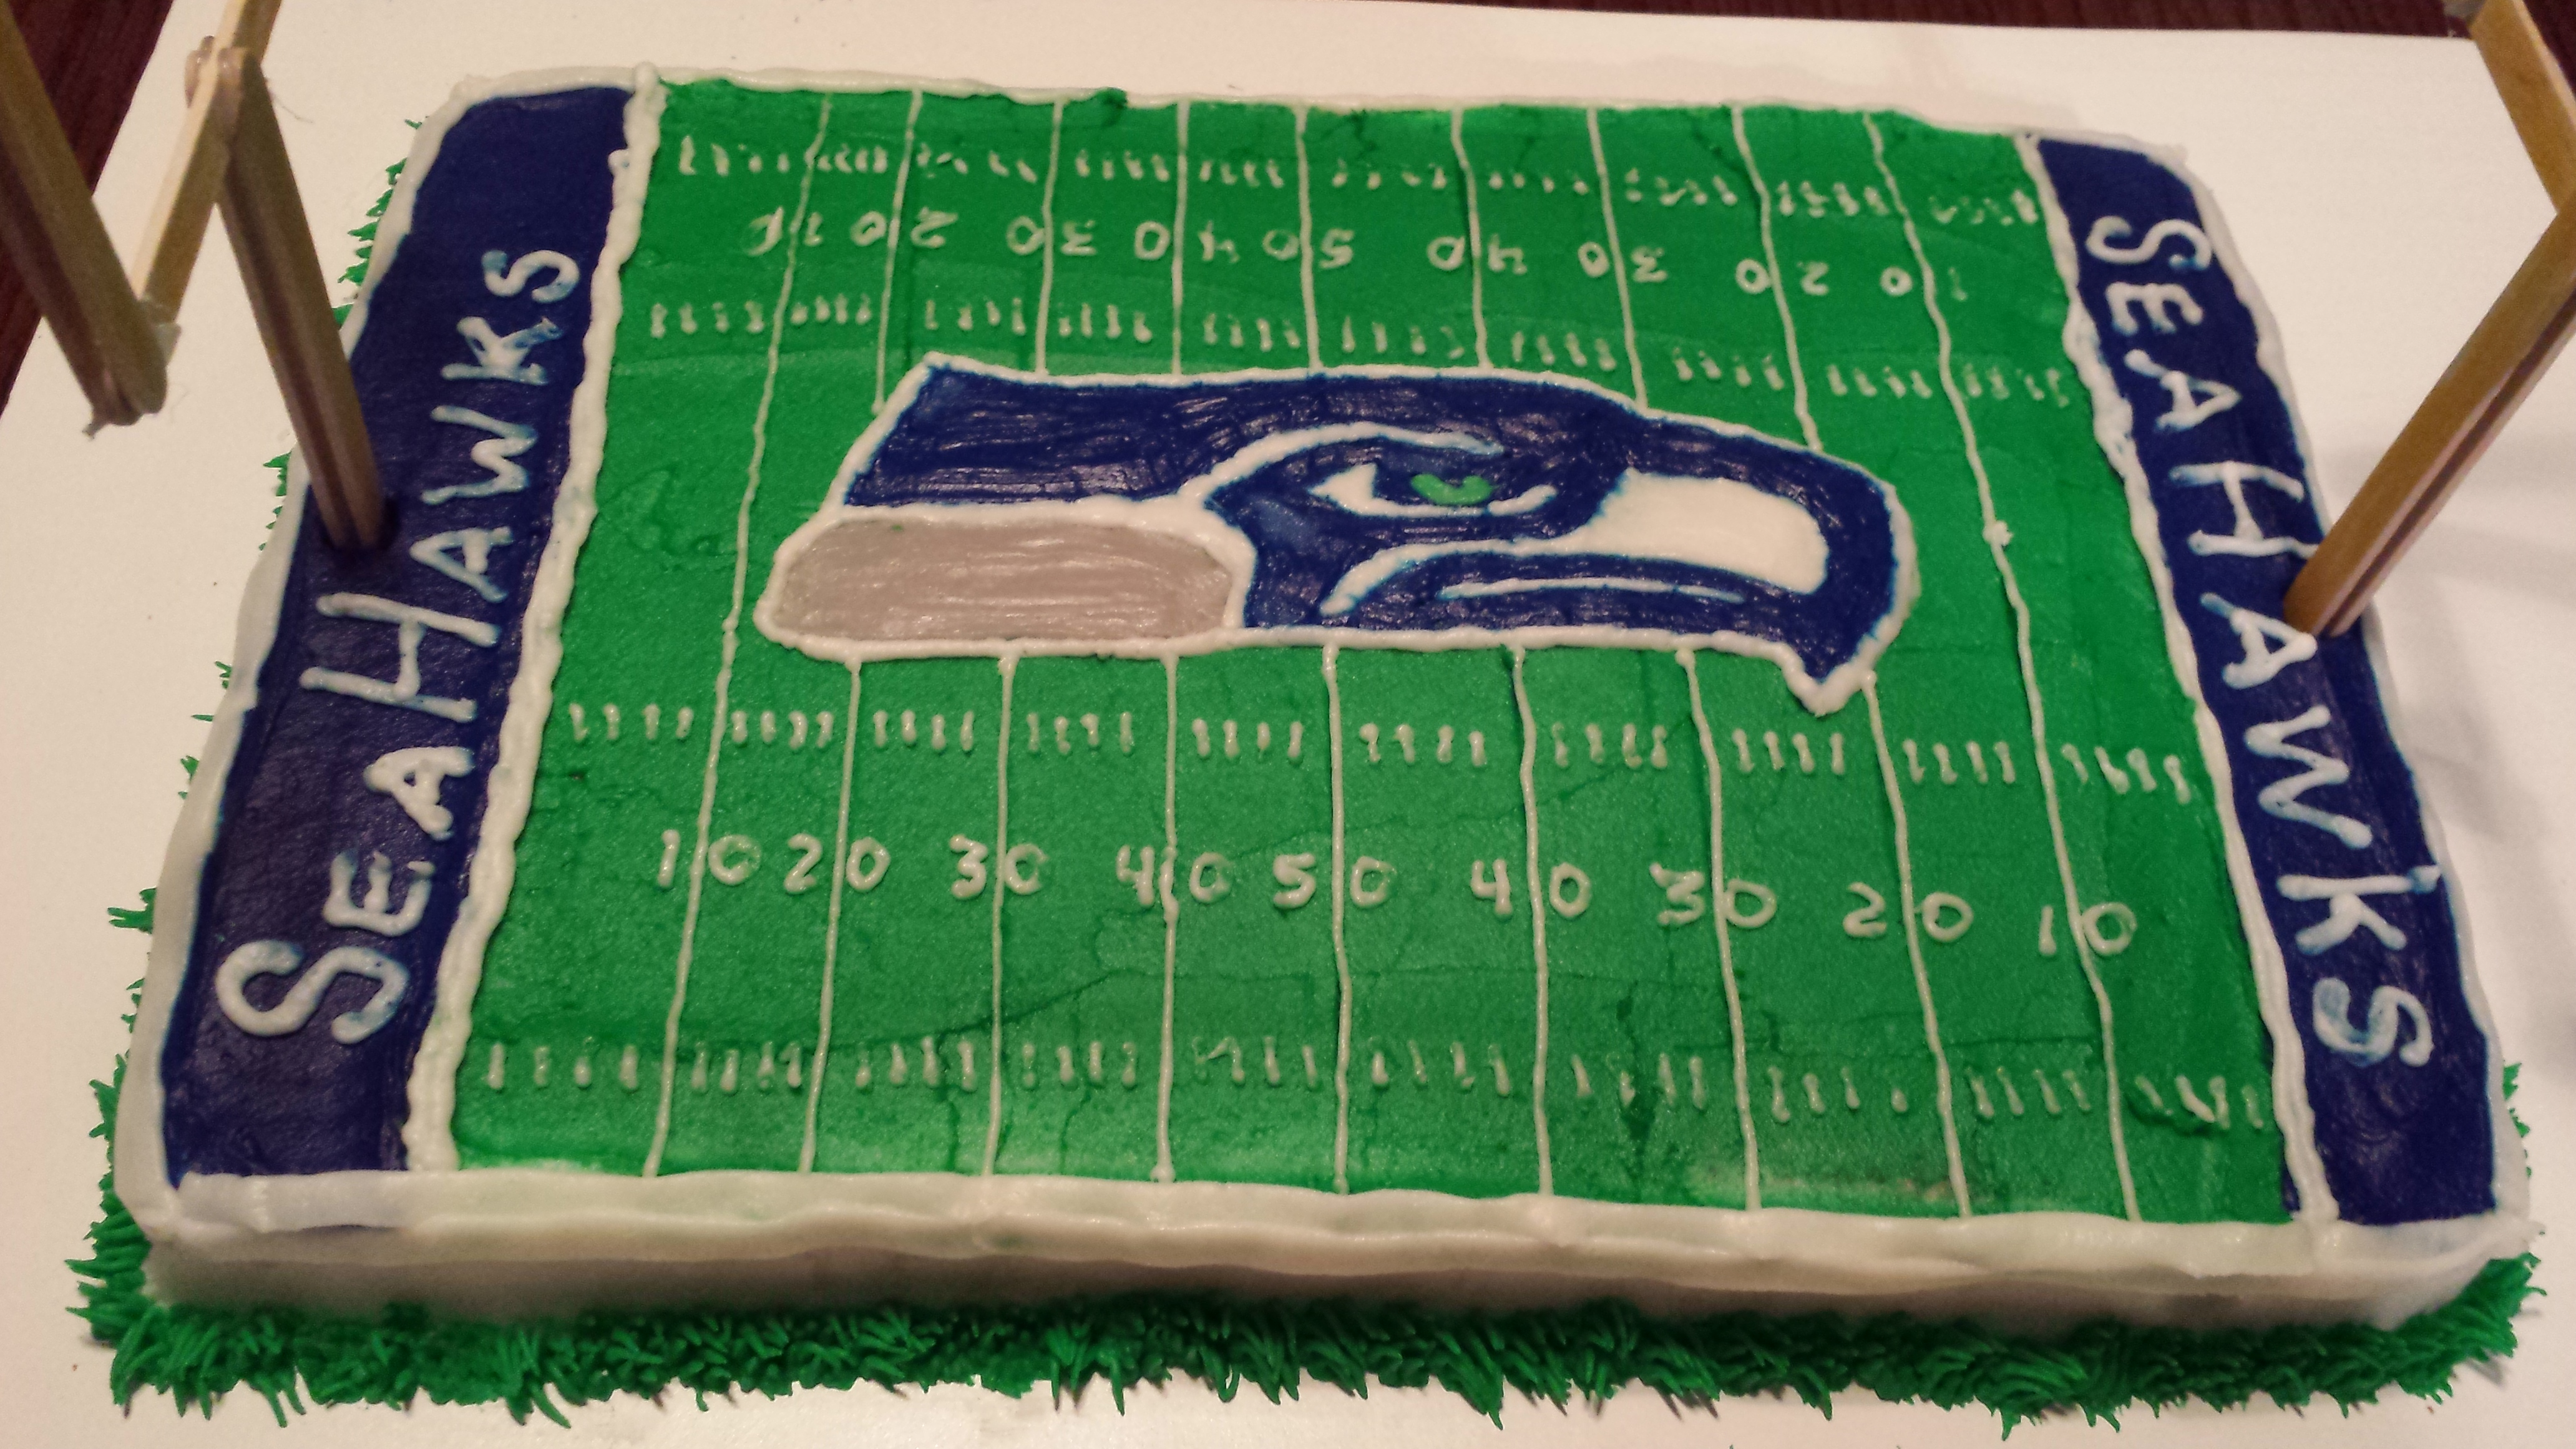 Pleasant Seattle Seahawks Birthday Cake Running Boston And Beyond Birthday Cards Printable Opercafe Filternl